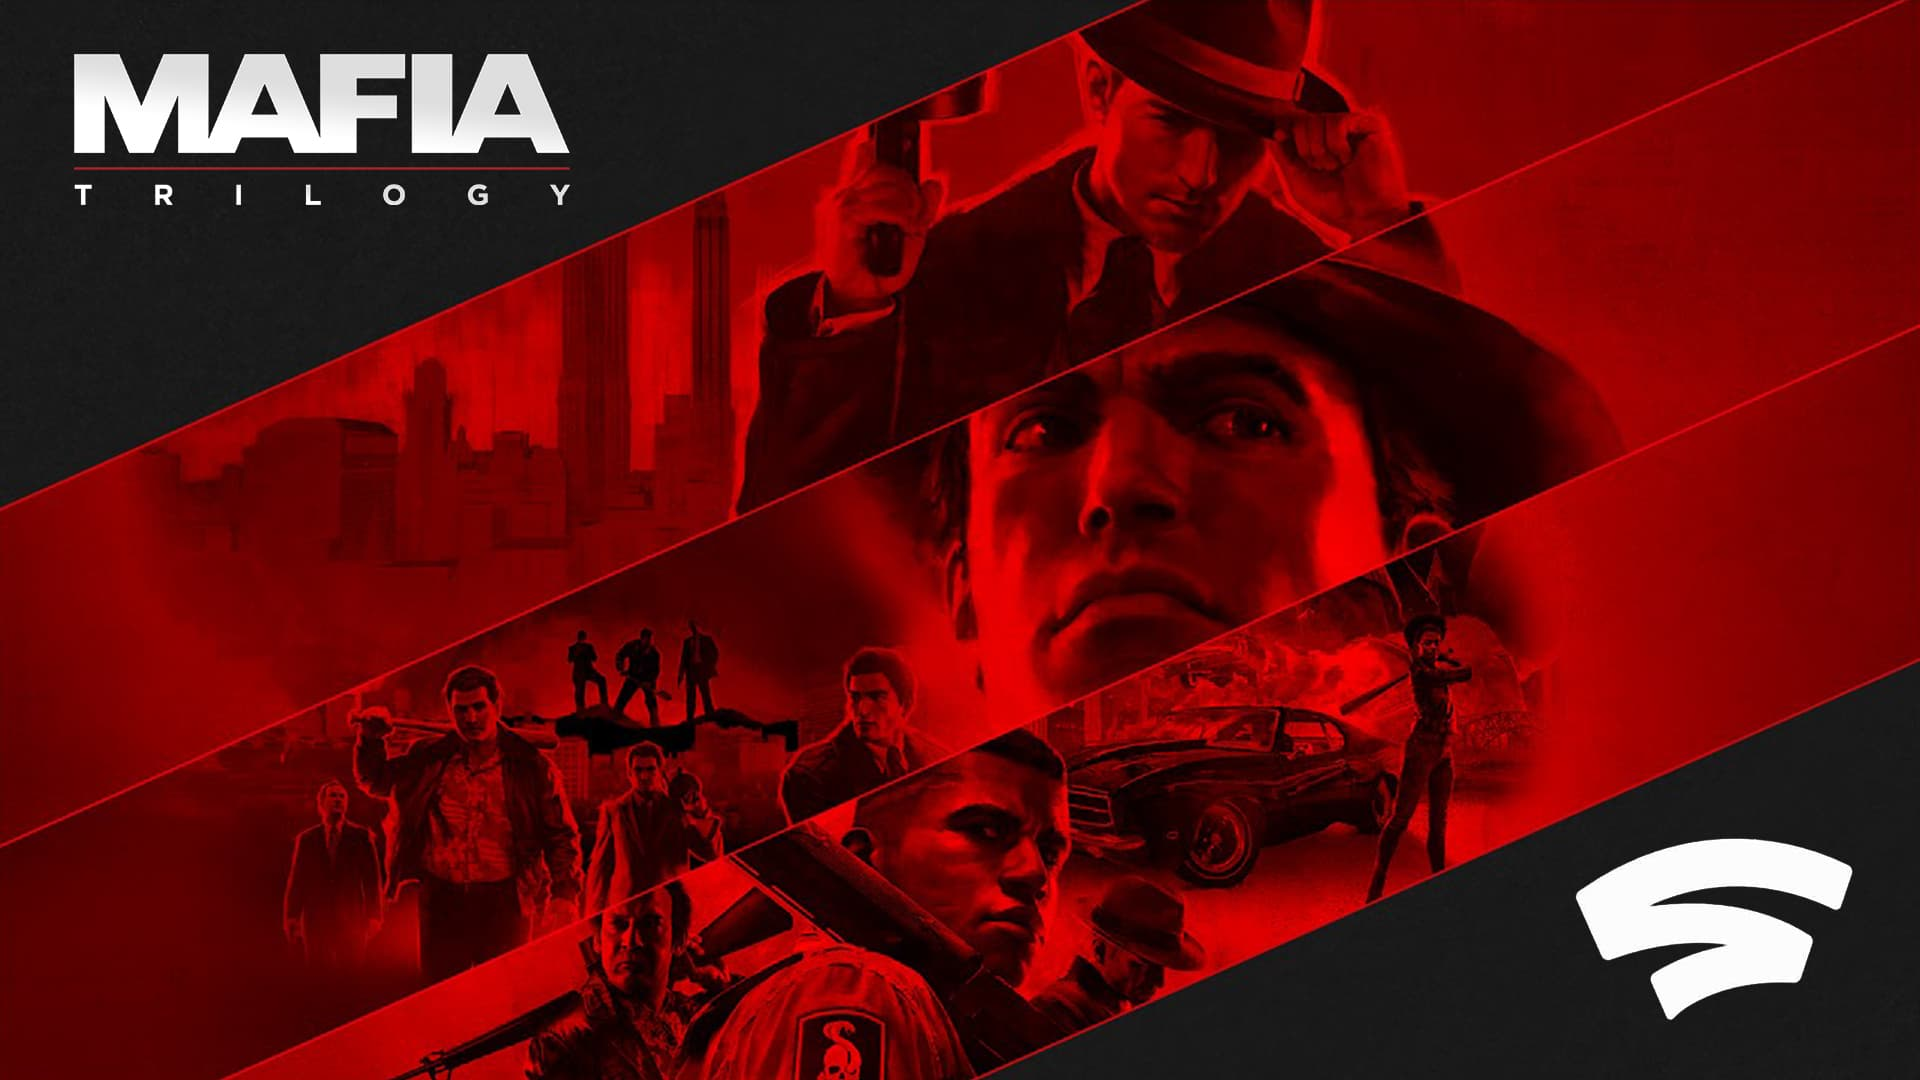 The remastered Mafia Trilogy may be releasing very soon on Stadia